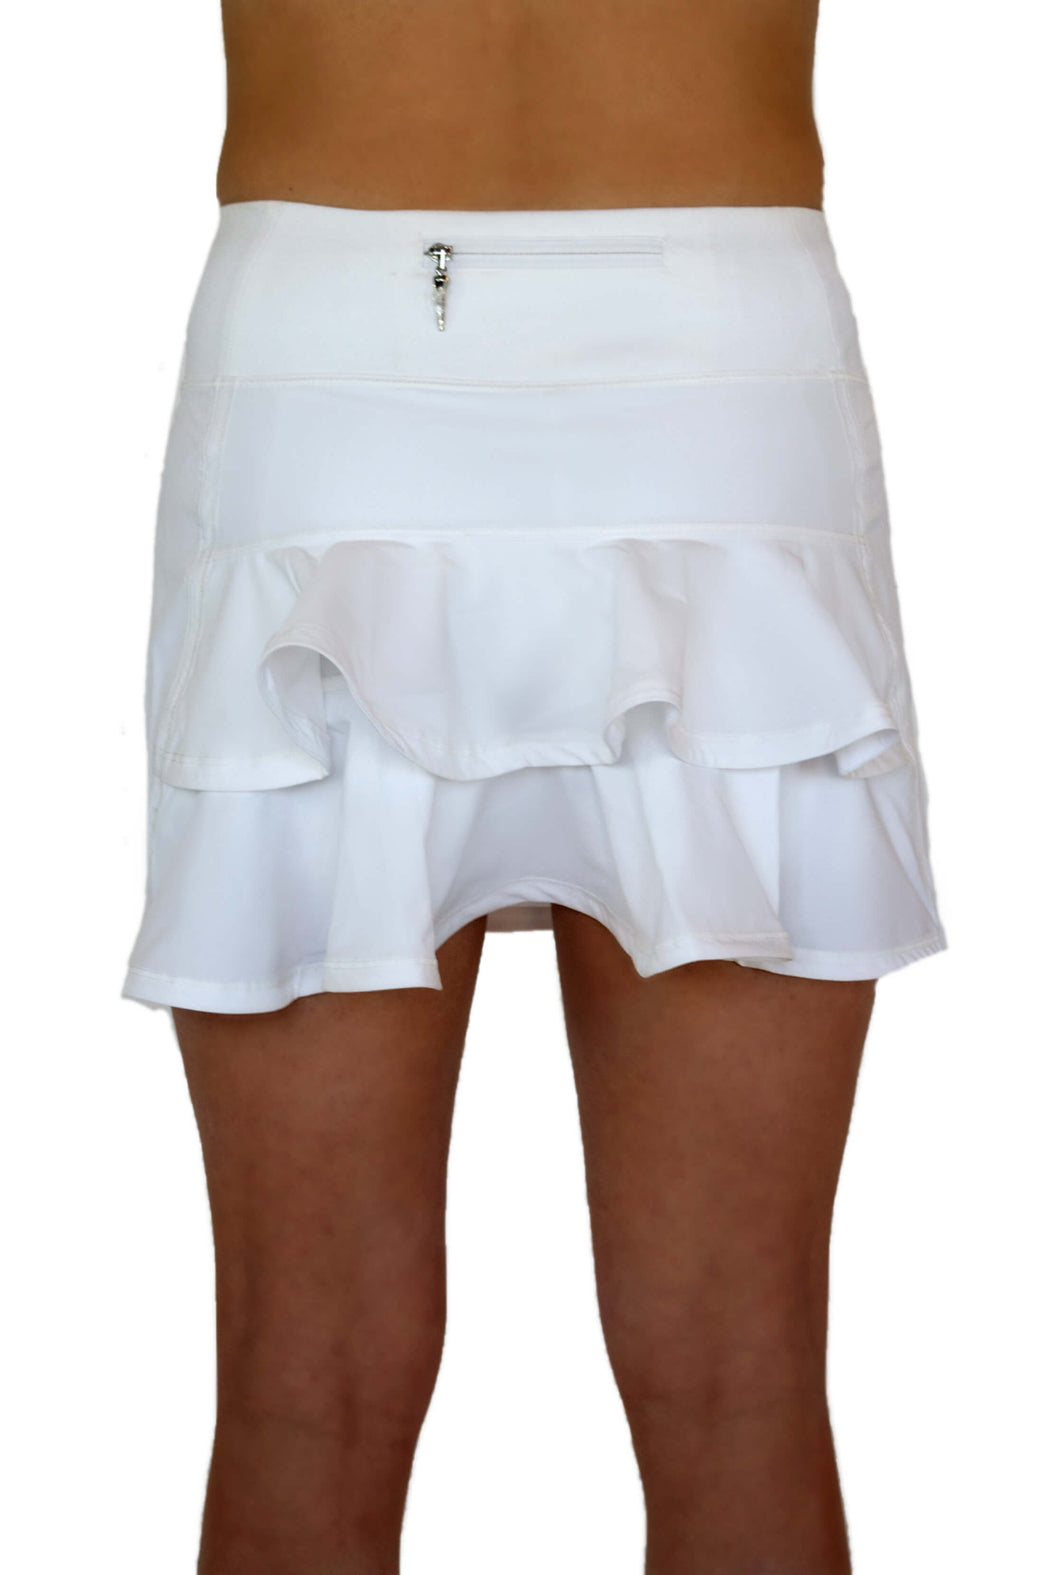 NEW! Double Ruffle Golf Skirt - White - FlirTee Golf